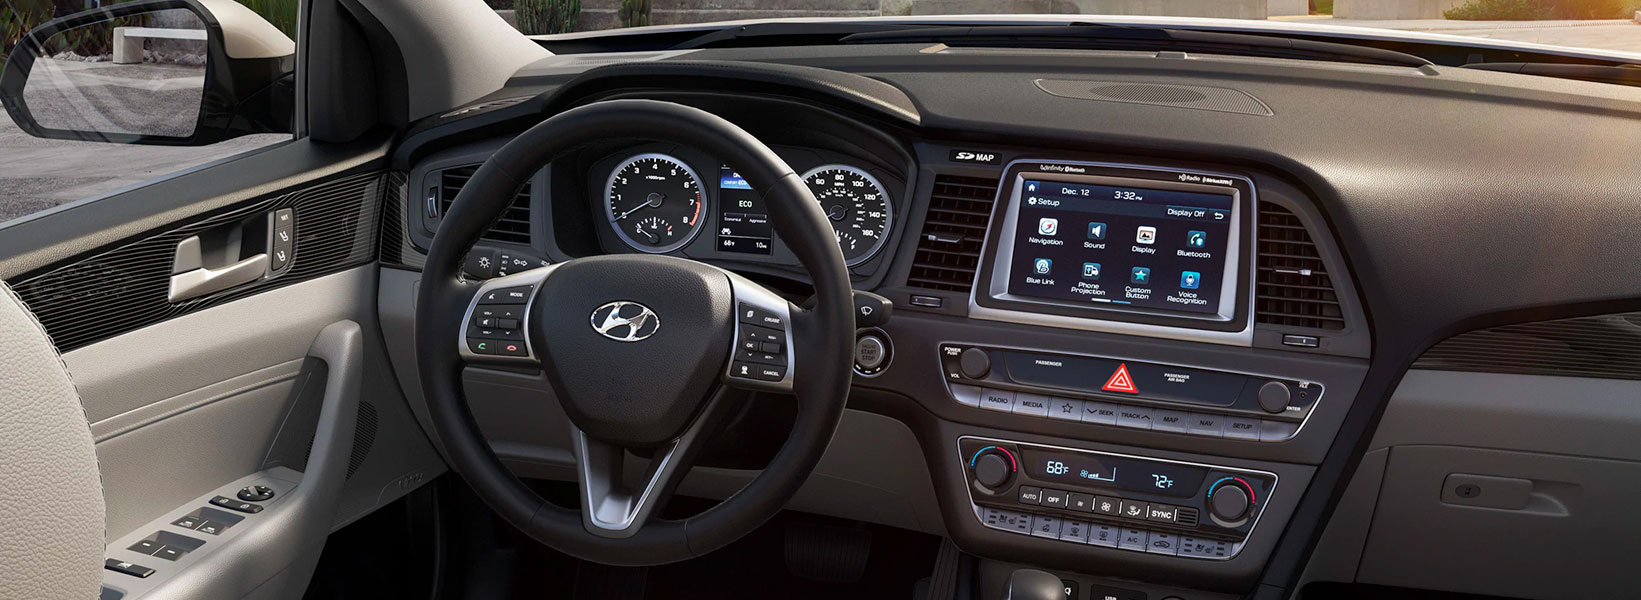 2019 Hyundai Sonata Features Chicago IL